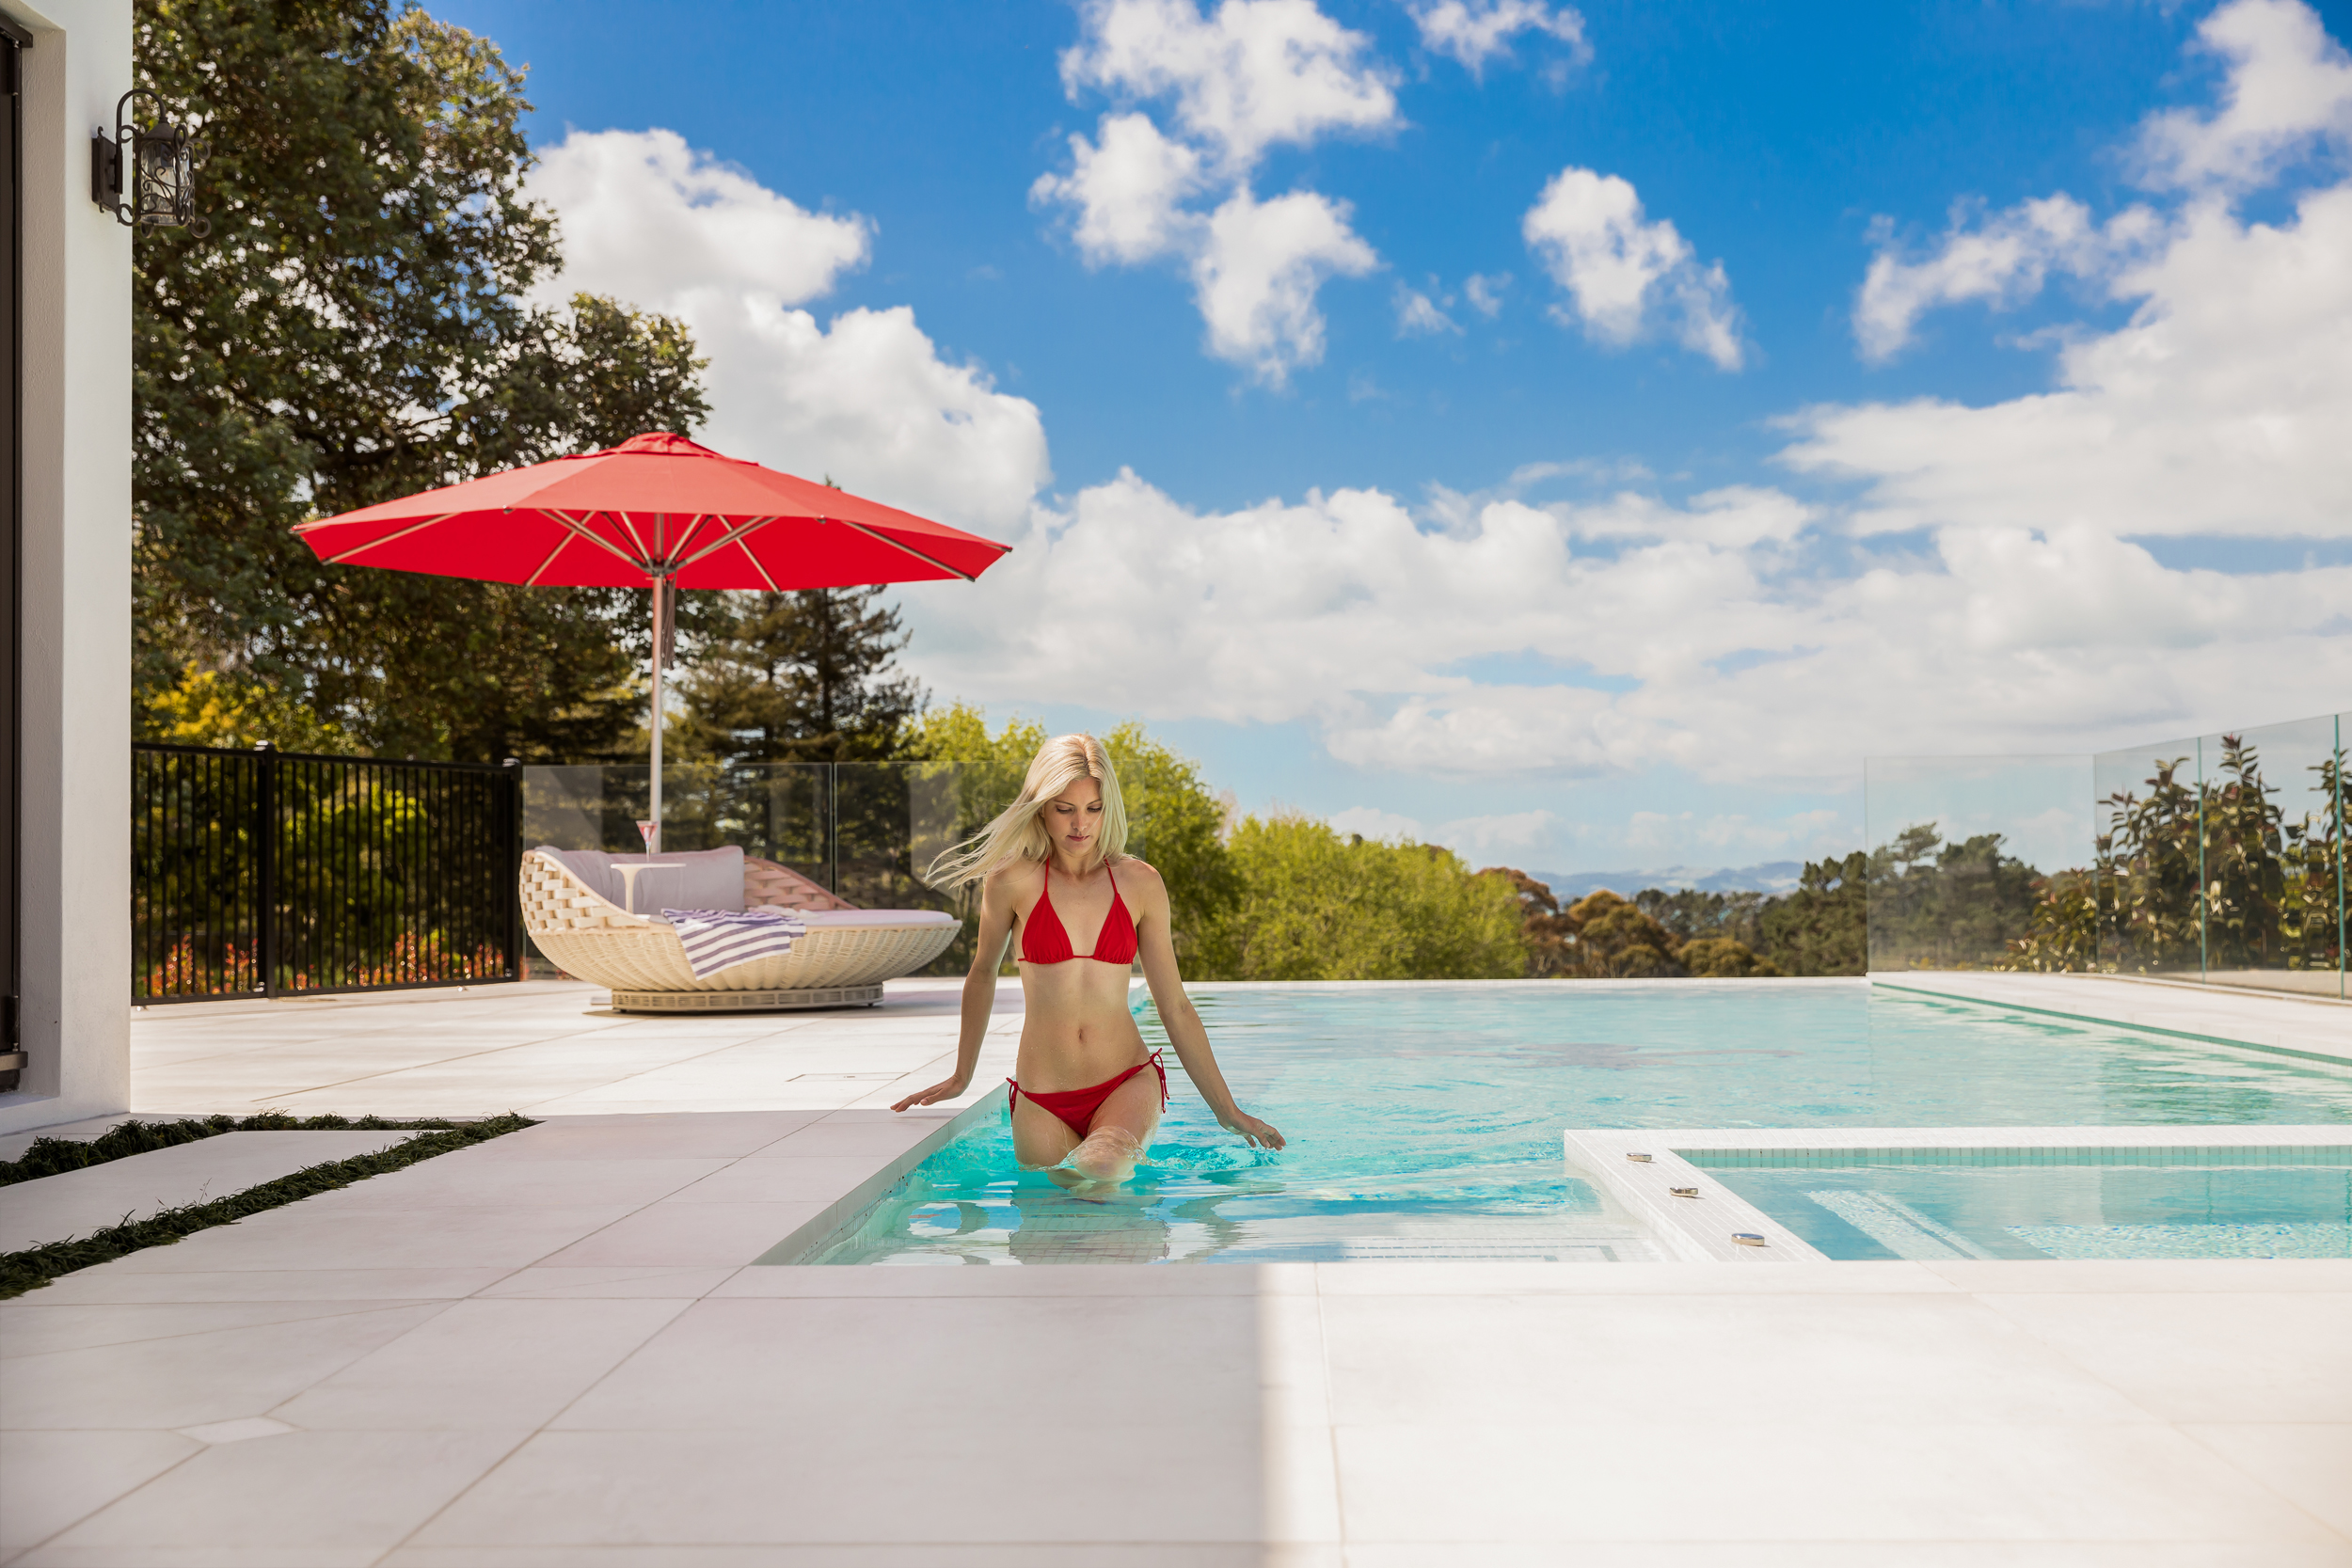 Round Outdoor Umbrella by Pool - Shade7 Milan